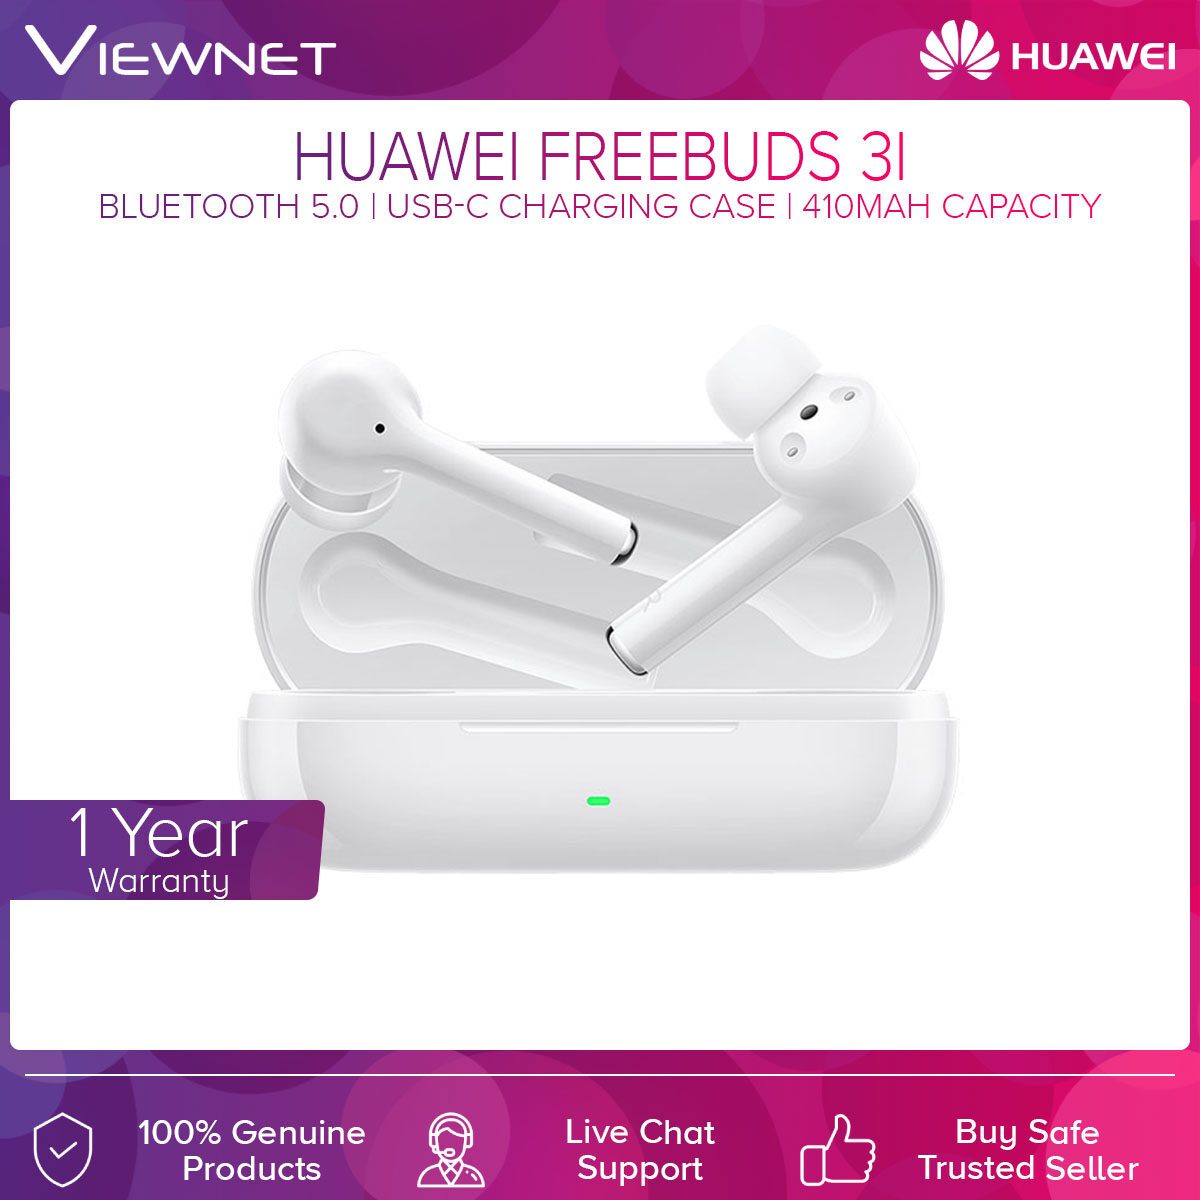 Huawei Wireless Earset FreeBuds 3i with Bluetooth 5.0, Active Noise Cancellation, Call Noise Cancellation, 3-Mic System, USB-C Port Charging Case, 14.5 Hours Charging Case Battery Life